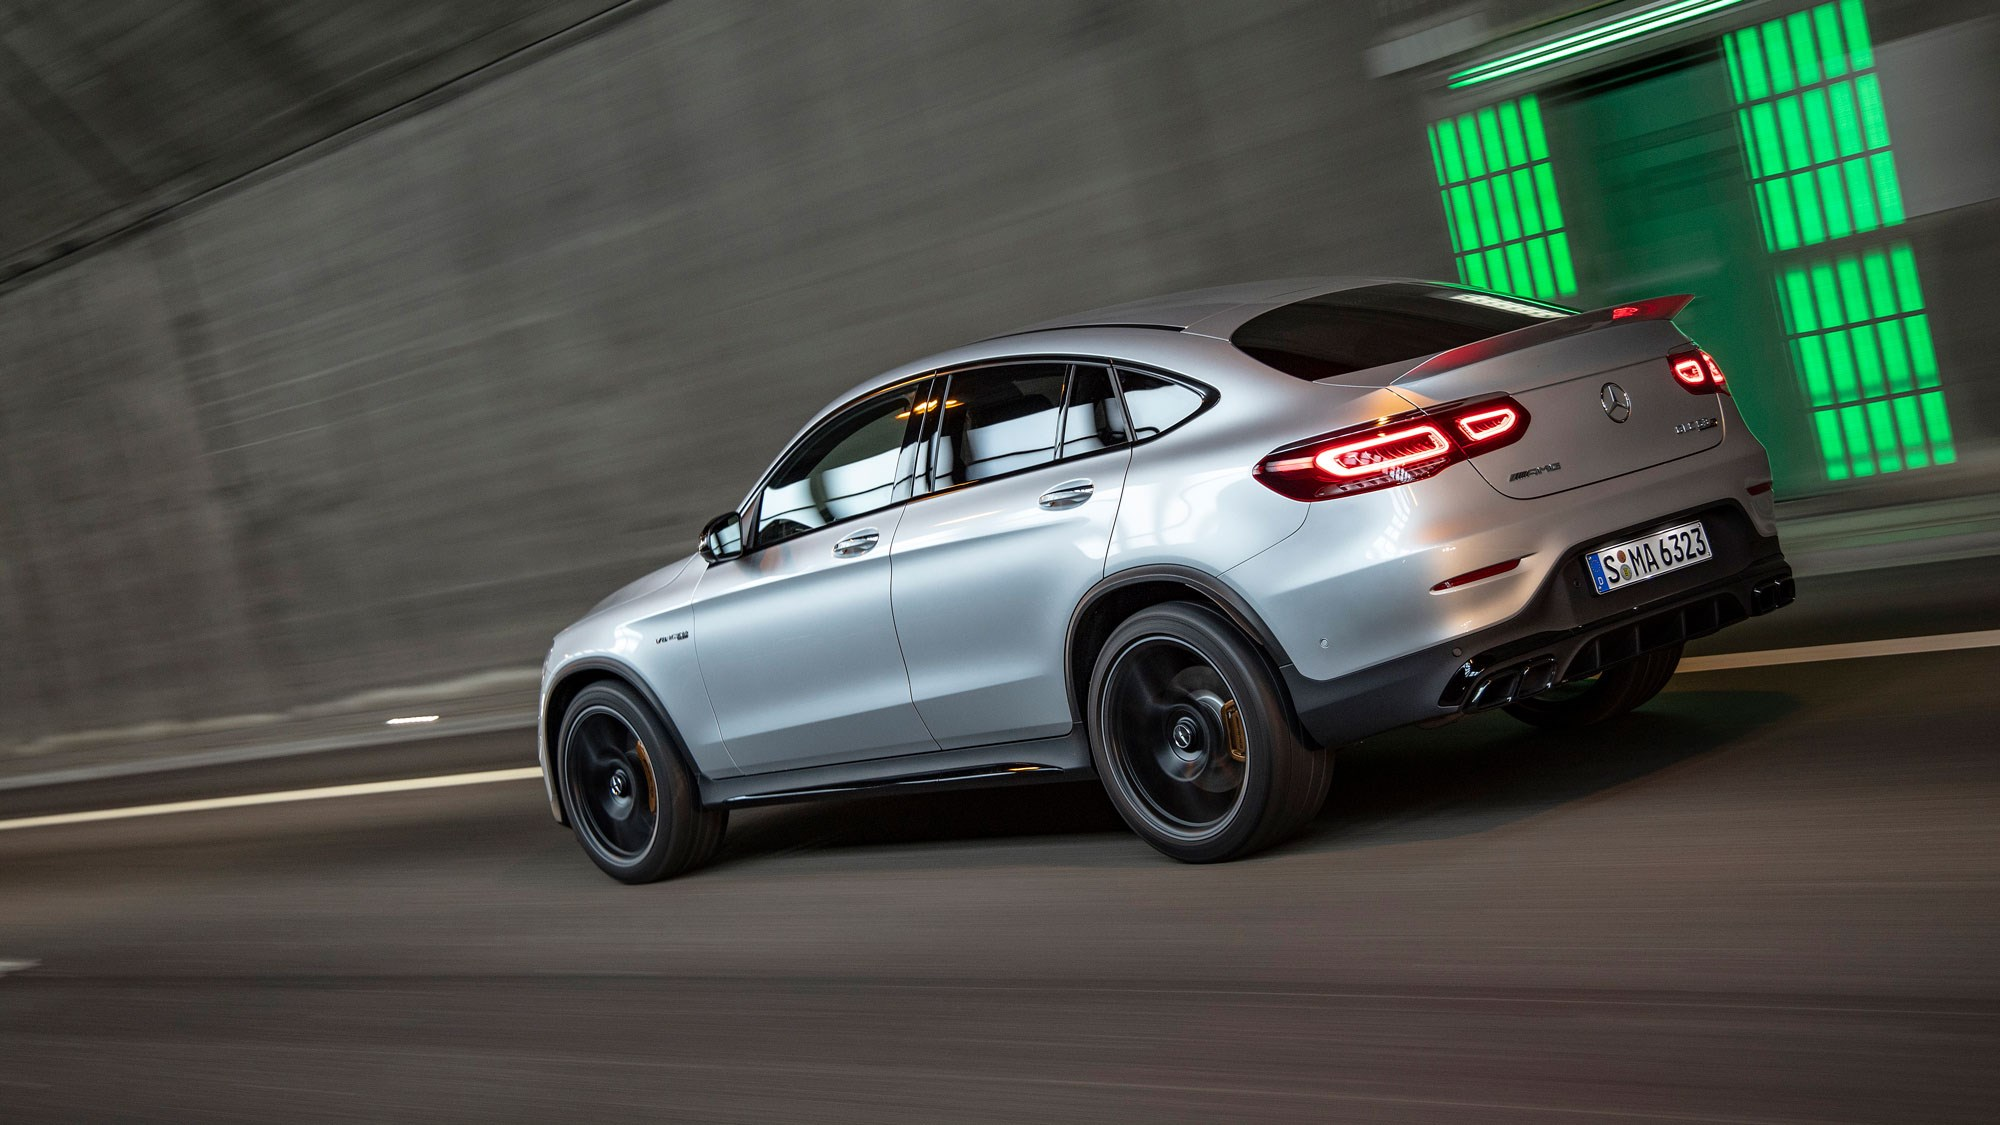 Mercedes Amg Glc 63 S Coupe Review Ballistically Powerful Car